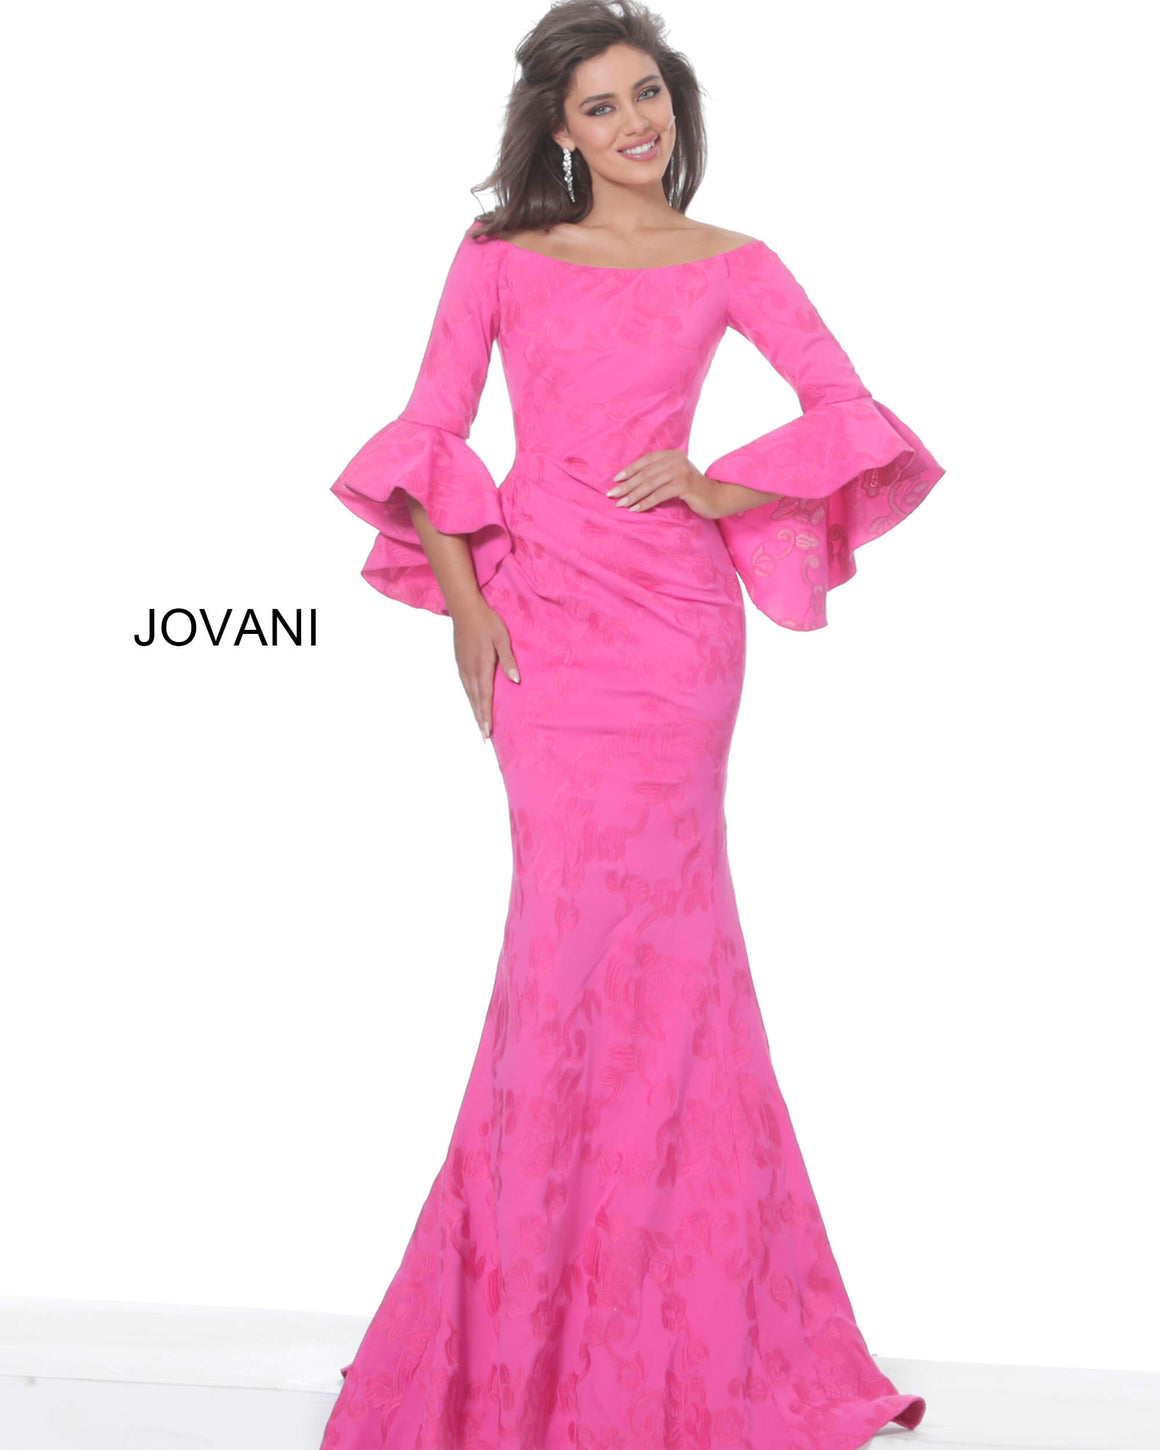 Jovani 02748 Fuchsia Off the Shoulder Bell Sleeve Evening Dress